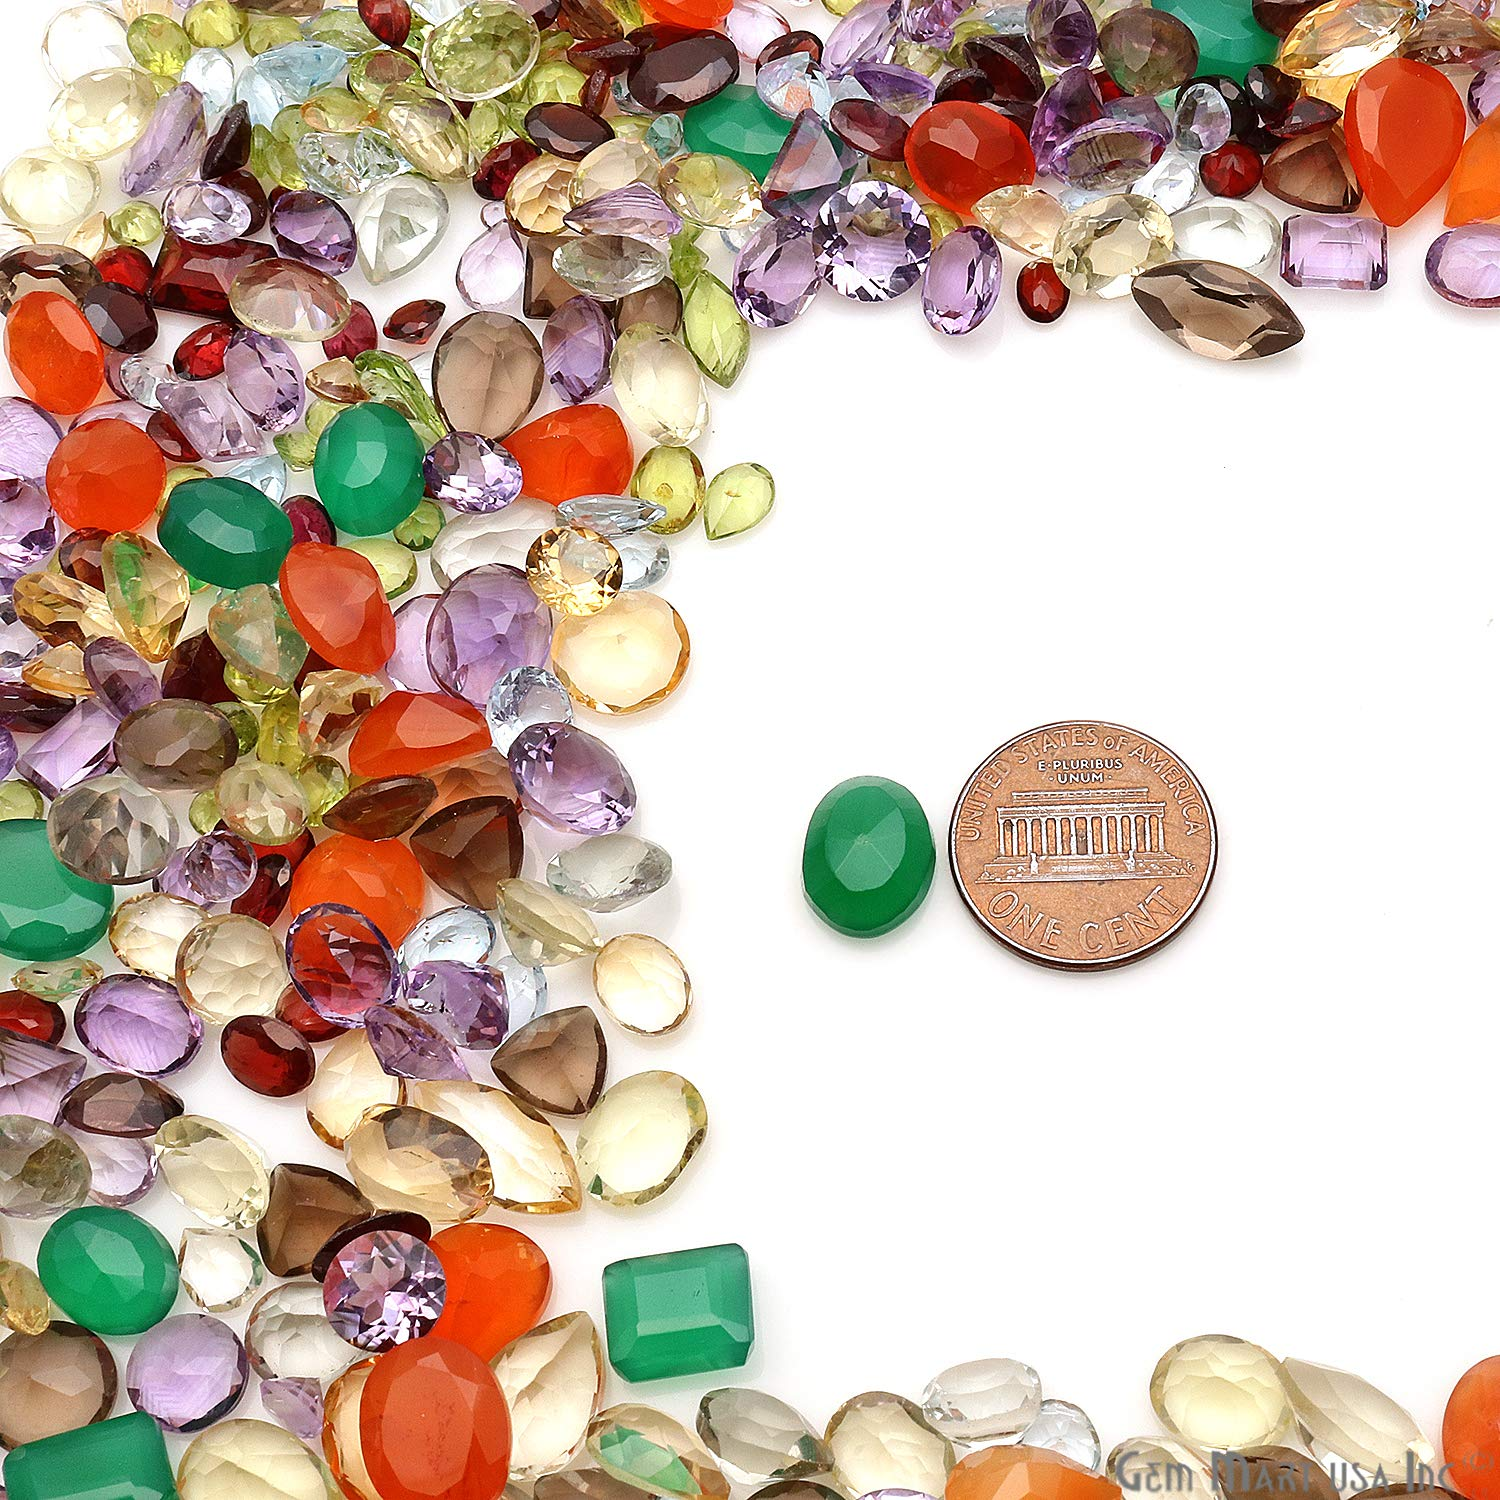 250 Carats Loose Mixed Gems Wholesale Lot Natural Faceted Semi Precious Gemstones Gemmartusa loose Gemstone